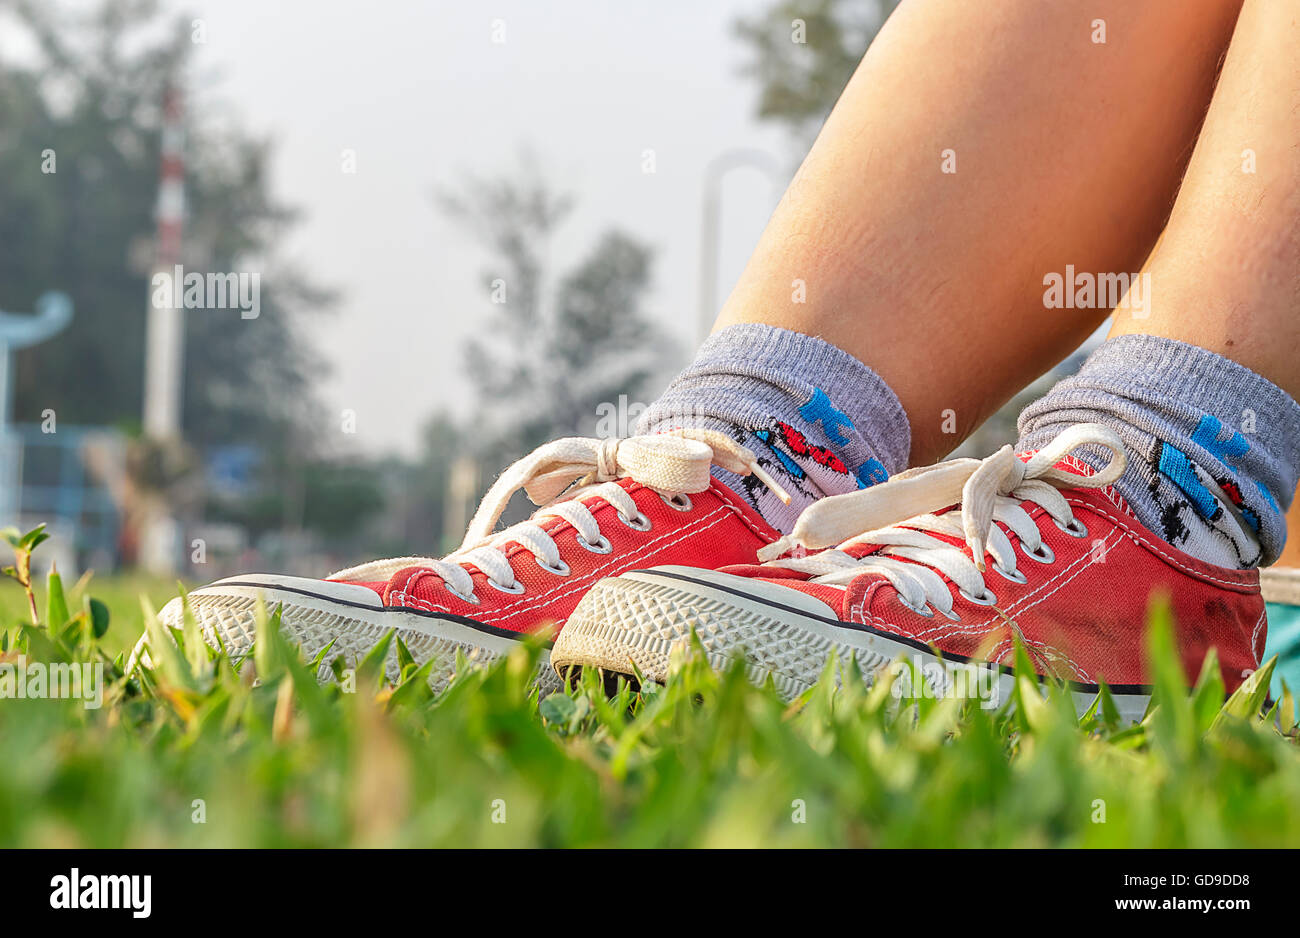 dd8884e7658 Red Shoes Stock Photos   Red Shoes Stock Images - Alamy